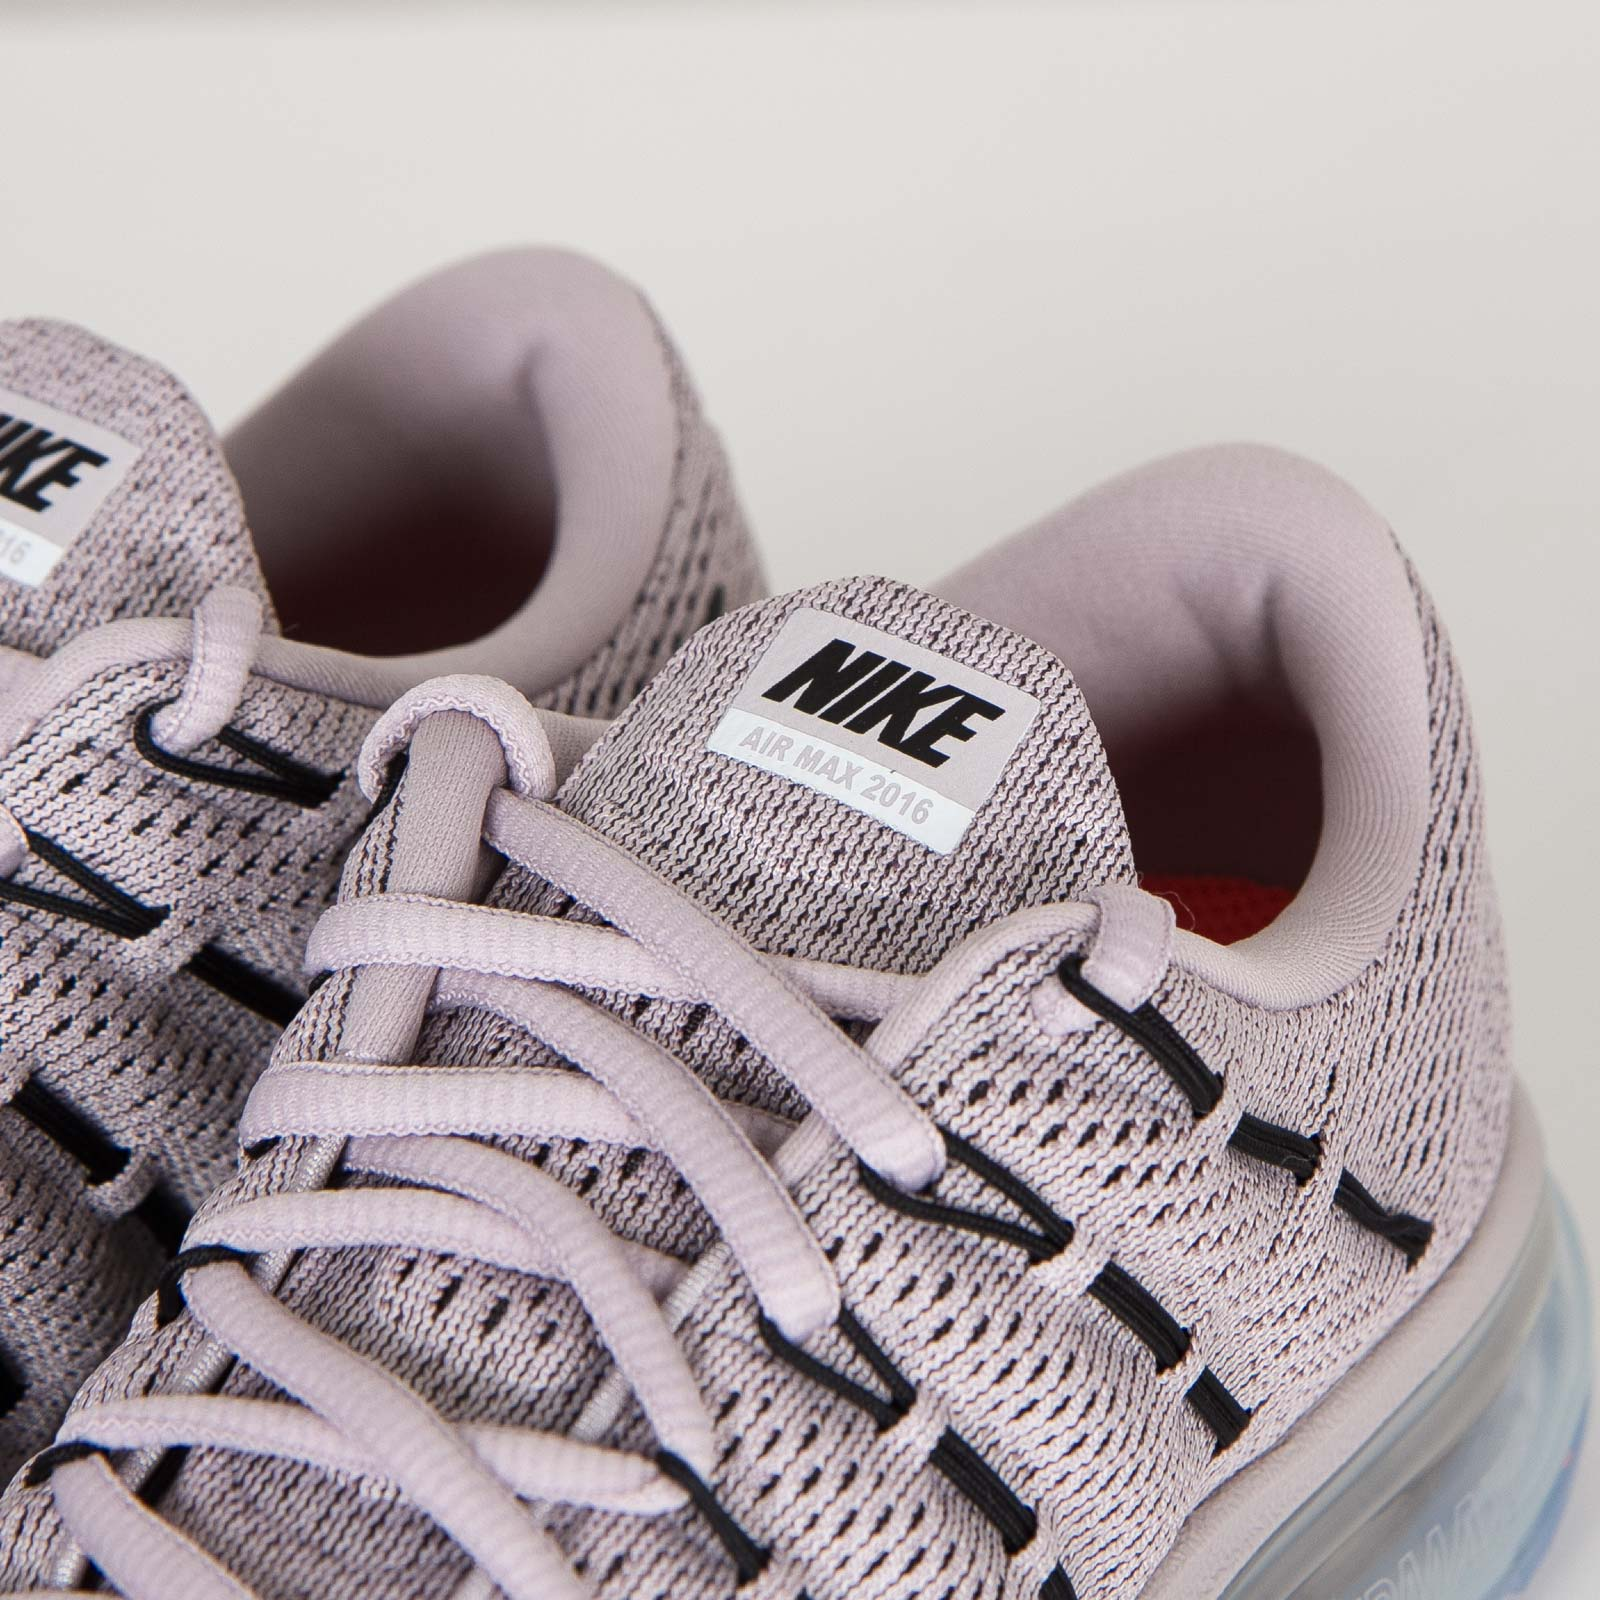 separation shoes ded38 5d41e Nike Wmns Air Max 2016 - 806772-501 - Sneakersnstuff   sneakers    streetwear online since 1999